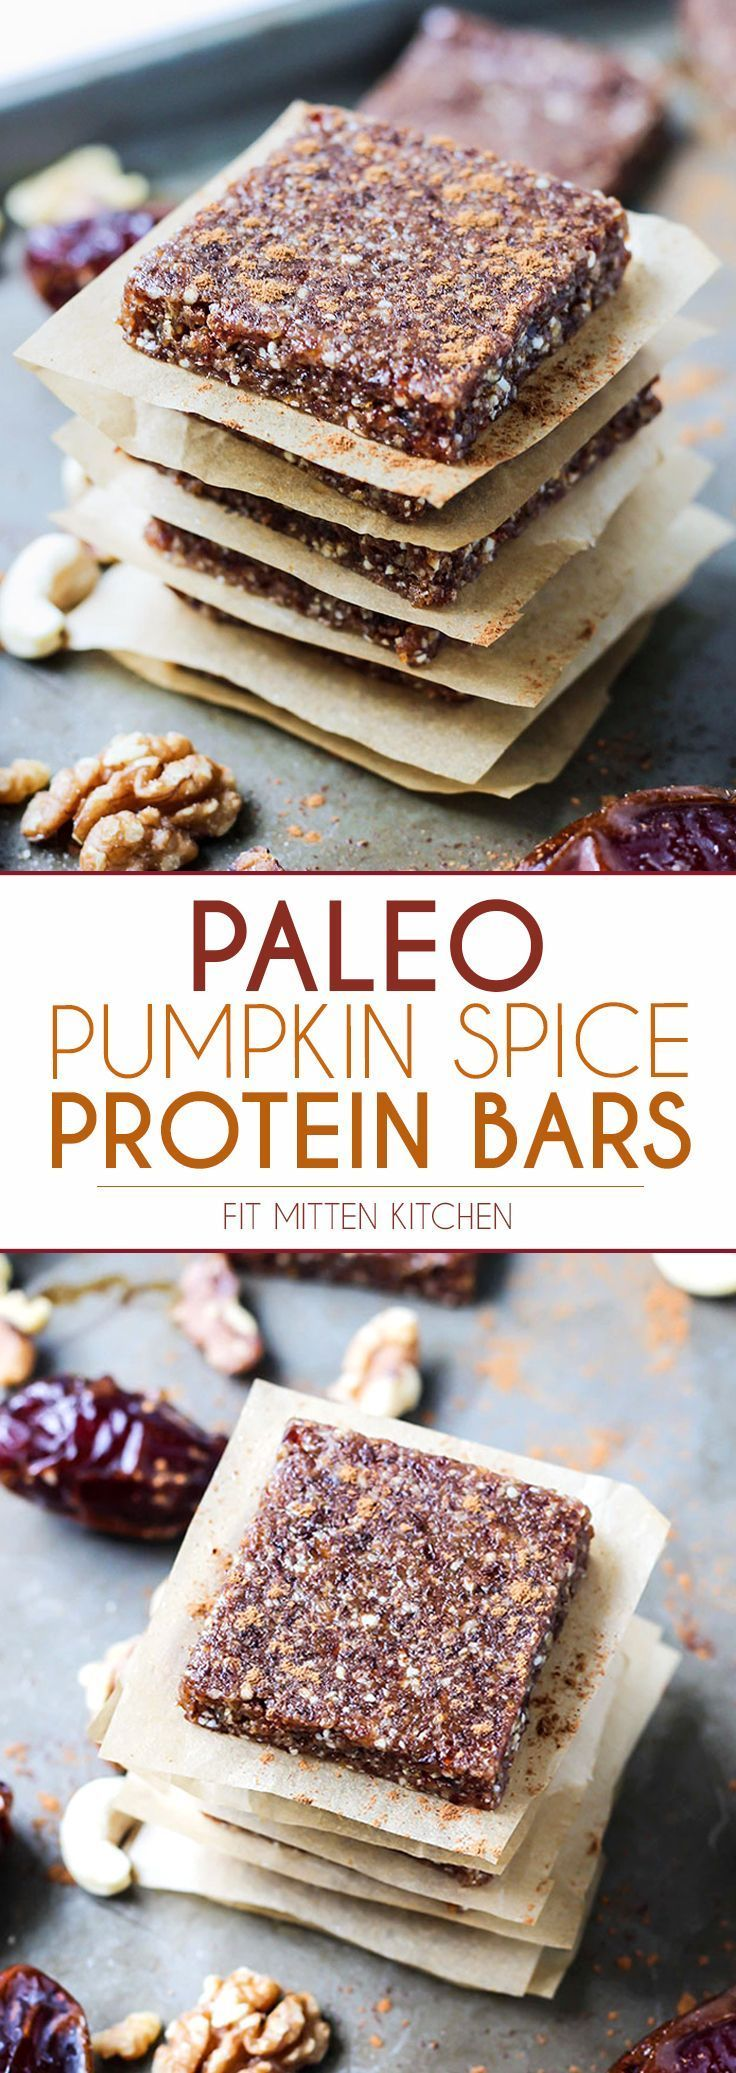 Simple bars FTW! | Pumpkin Spice Paleo Protein Bars use a simple blend of dates, nuts, and loads of pumpkin pie spice and cinnamon for extra flavor. Using collagen for protein plus added health benefits!